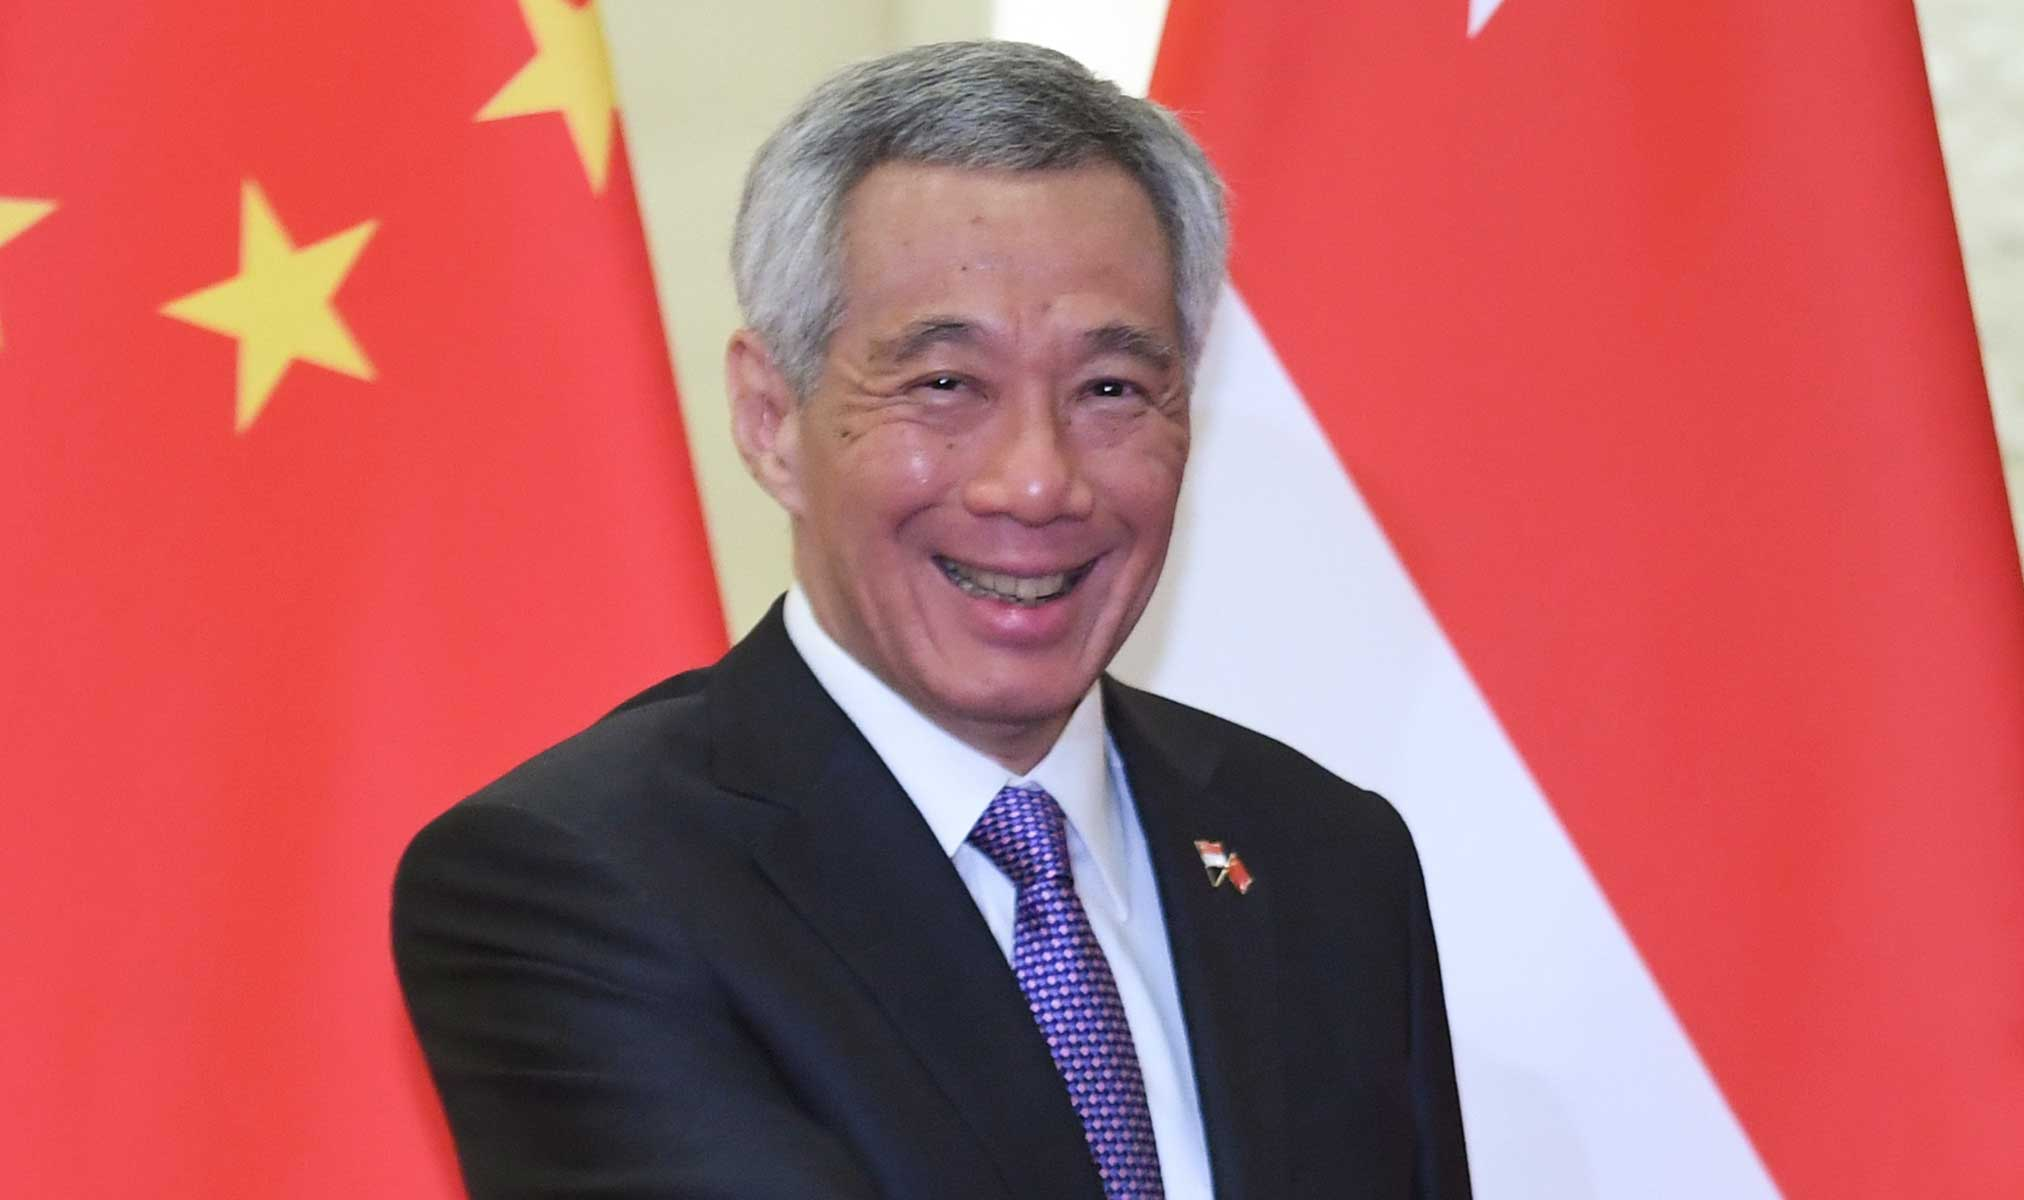 """At the inauguration of the bicentennial in January this year, Singapore's Prime Minister Lee Hsien Loong said, """"Without 1819 (the year Raffles arrived), we may never have launched on the path to nationhood as we know it today."""""""